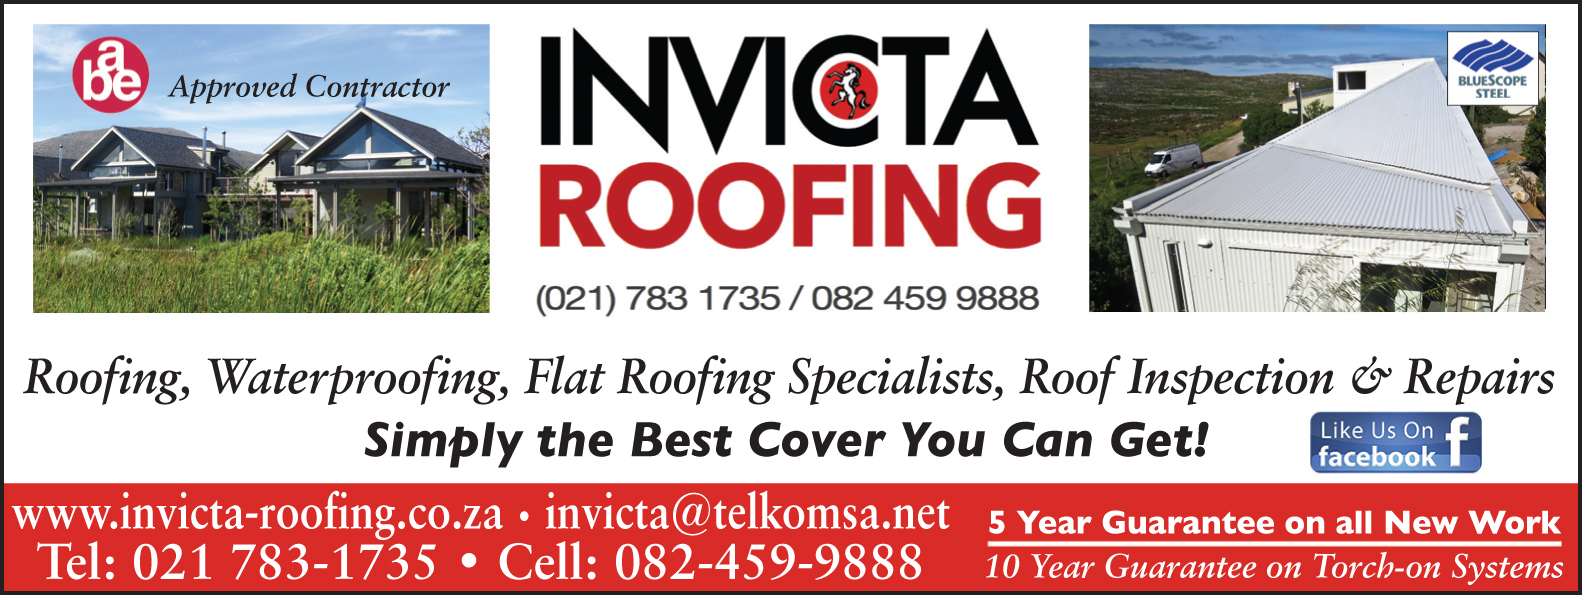 Invicta Roofing